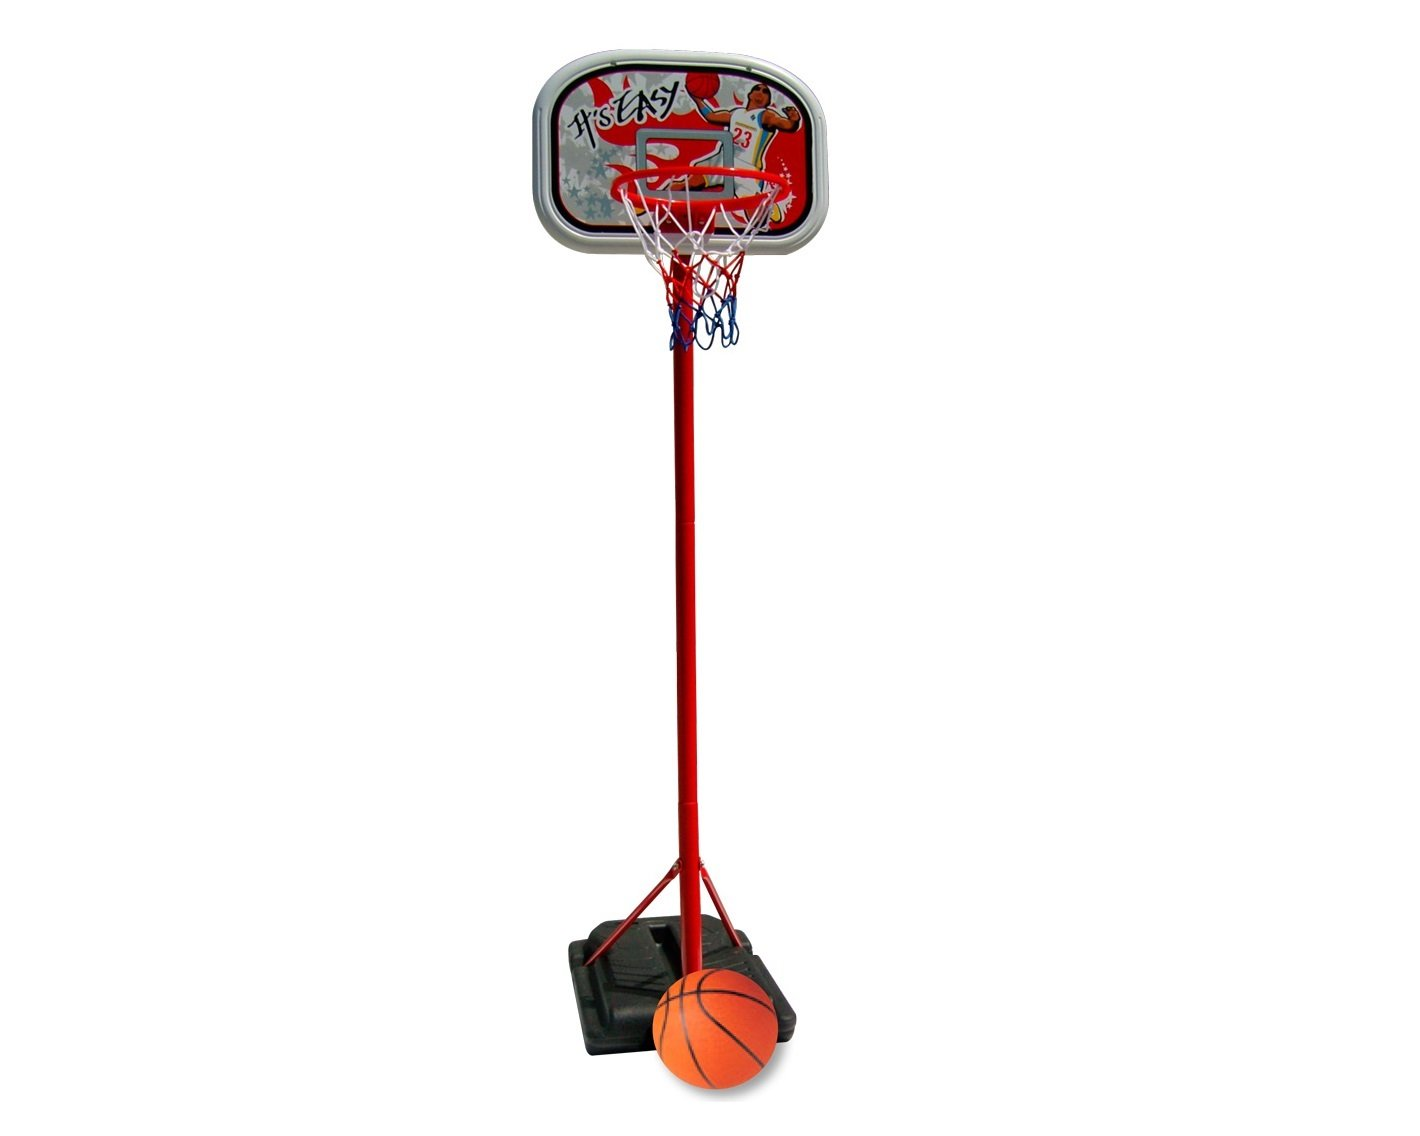 New Plast CB1607 - Jets Set da Basket con Piantana in Metallo, Altezza 185 cm